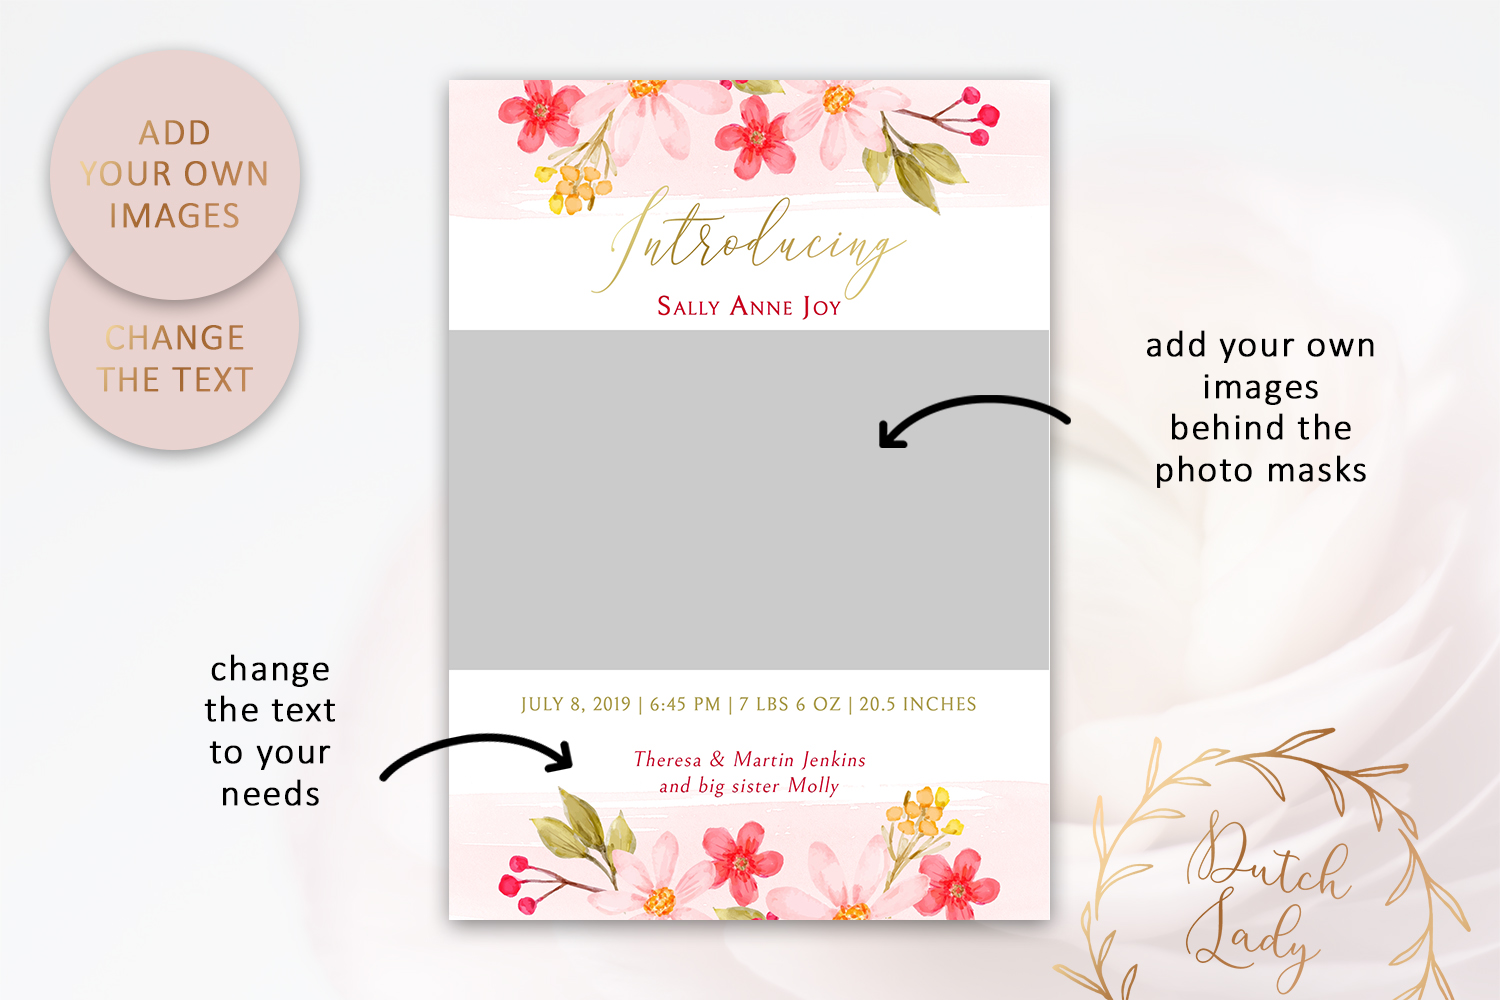 PSD Birth Announcement Card Template - Design #5 example image 2